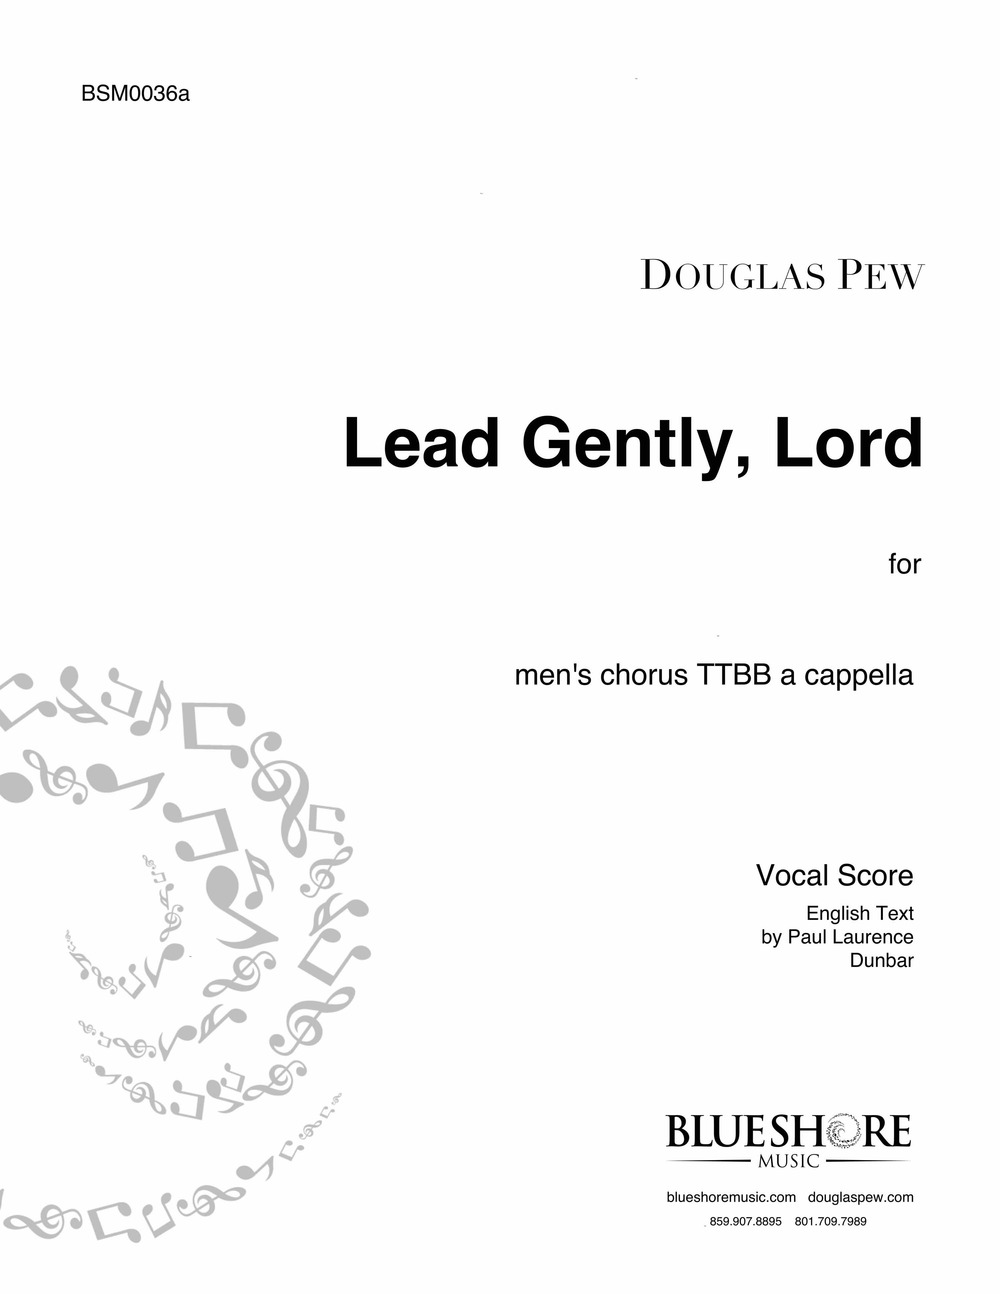 Lead Gently, Lord , for TTBB (or SATB) a cappella